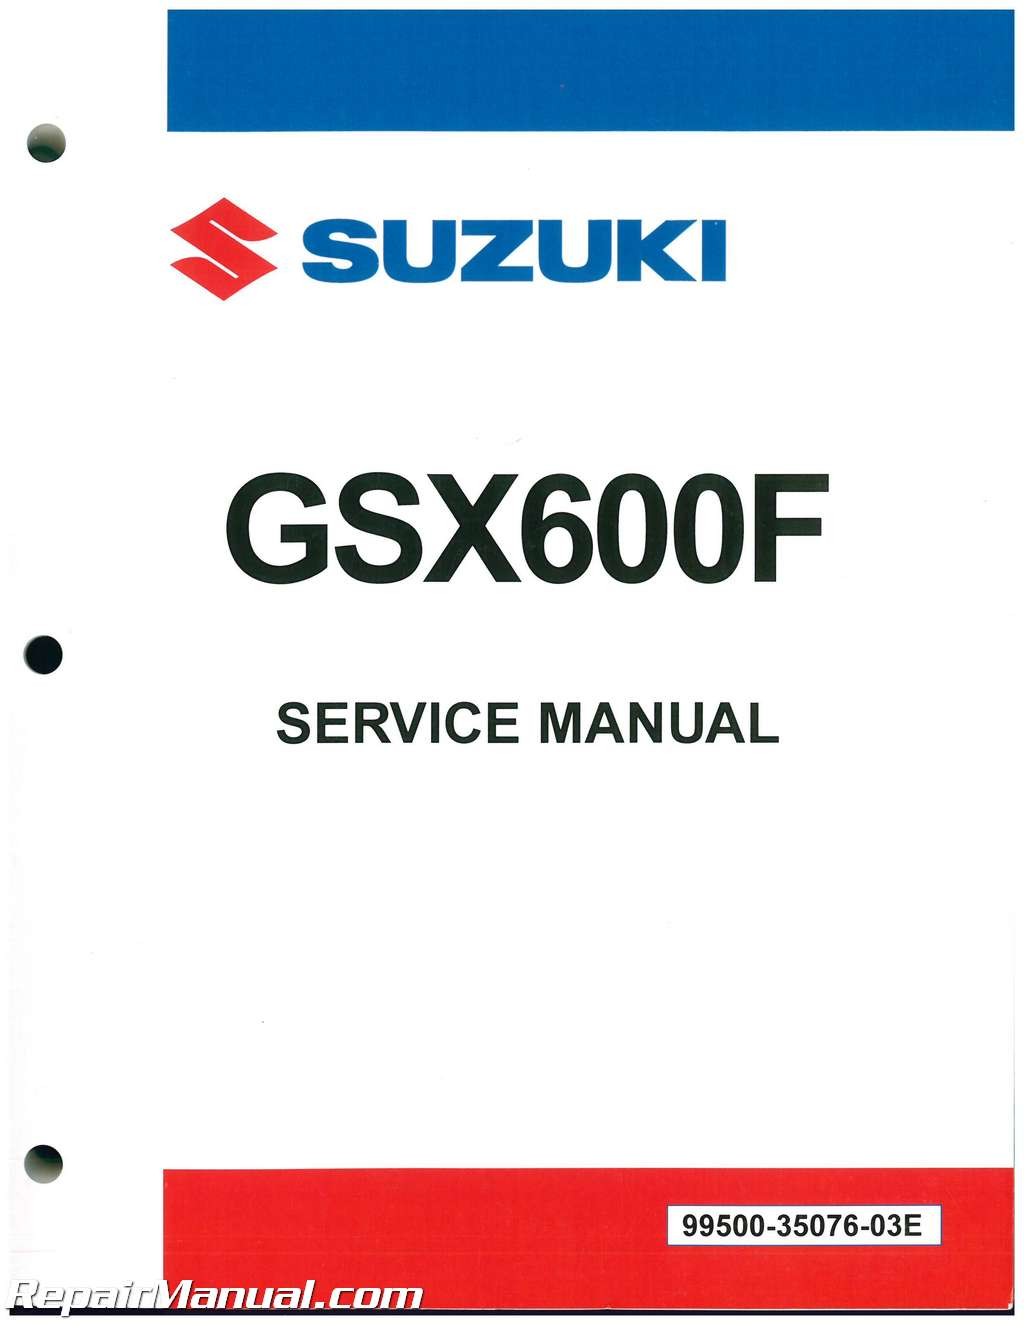 1998 2006 suzuki gsx600f katana motorcycle service manual rh repairmanual com 2006 suzuki katana 750 repair manual 2006 suzuki katana 750 manual